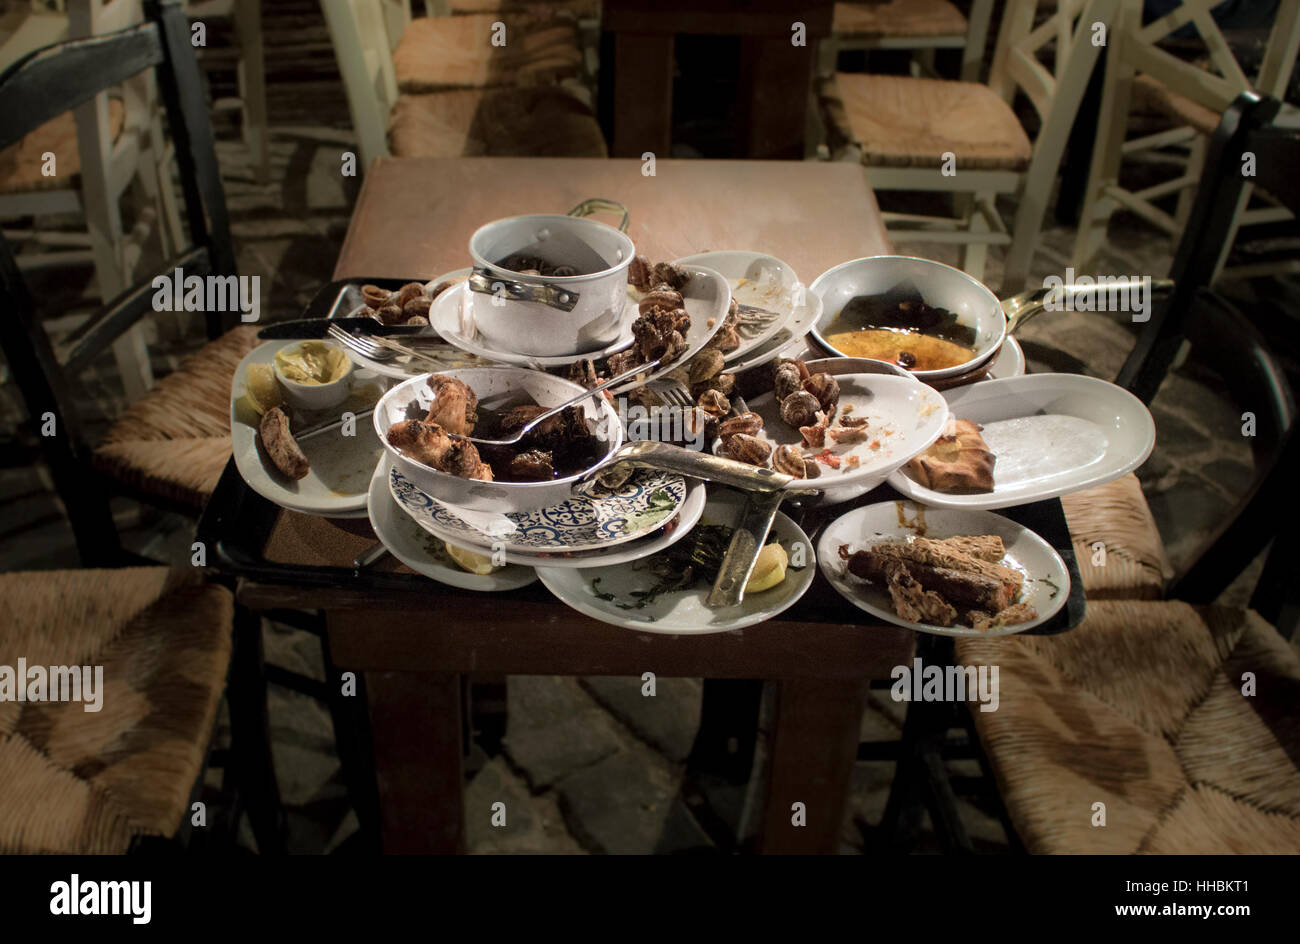 Leftover Food On Stacked Plates In A Restaurant Greek Taverna